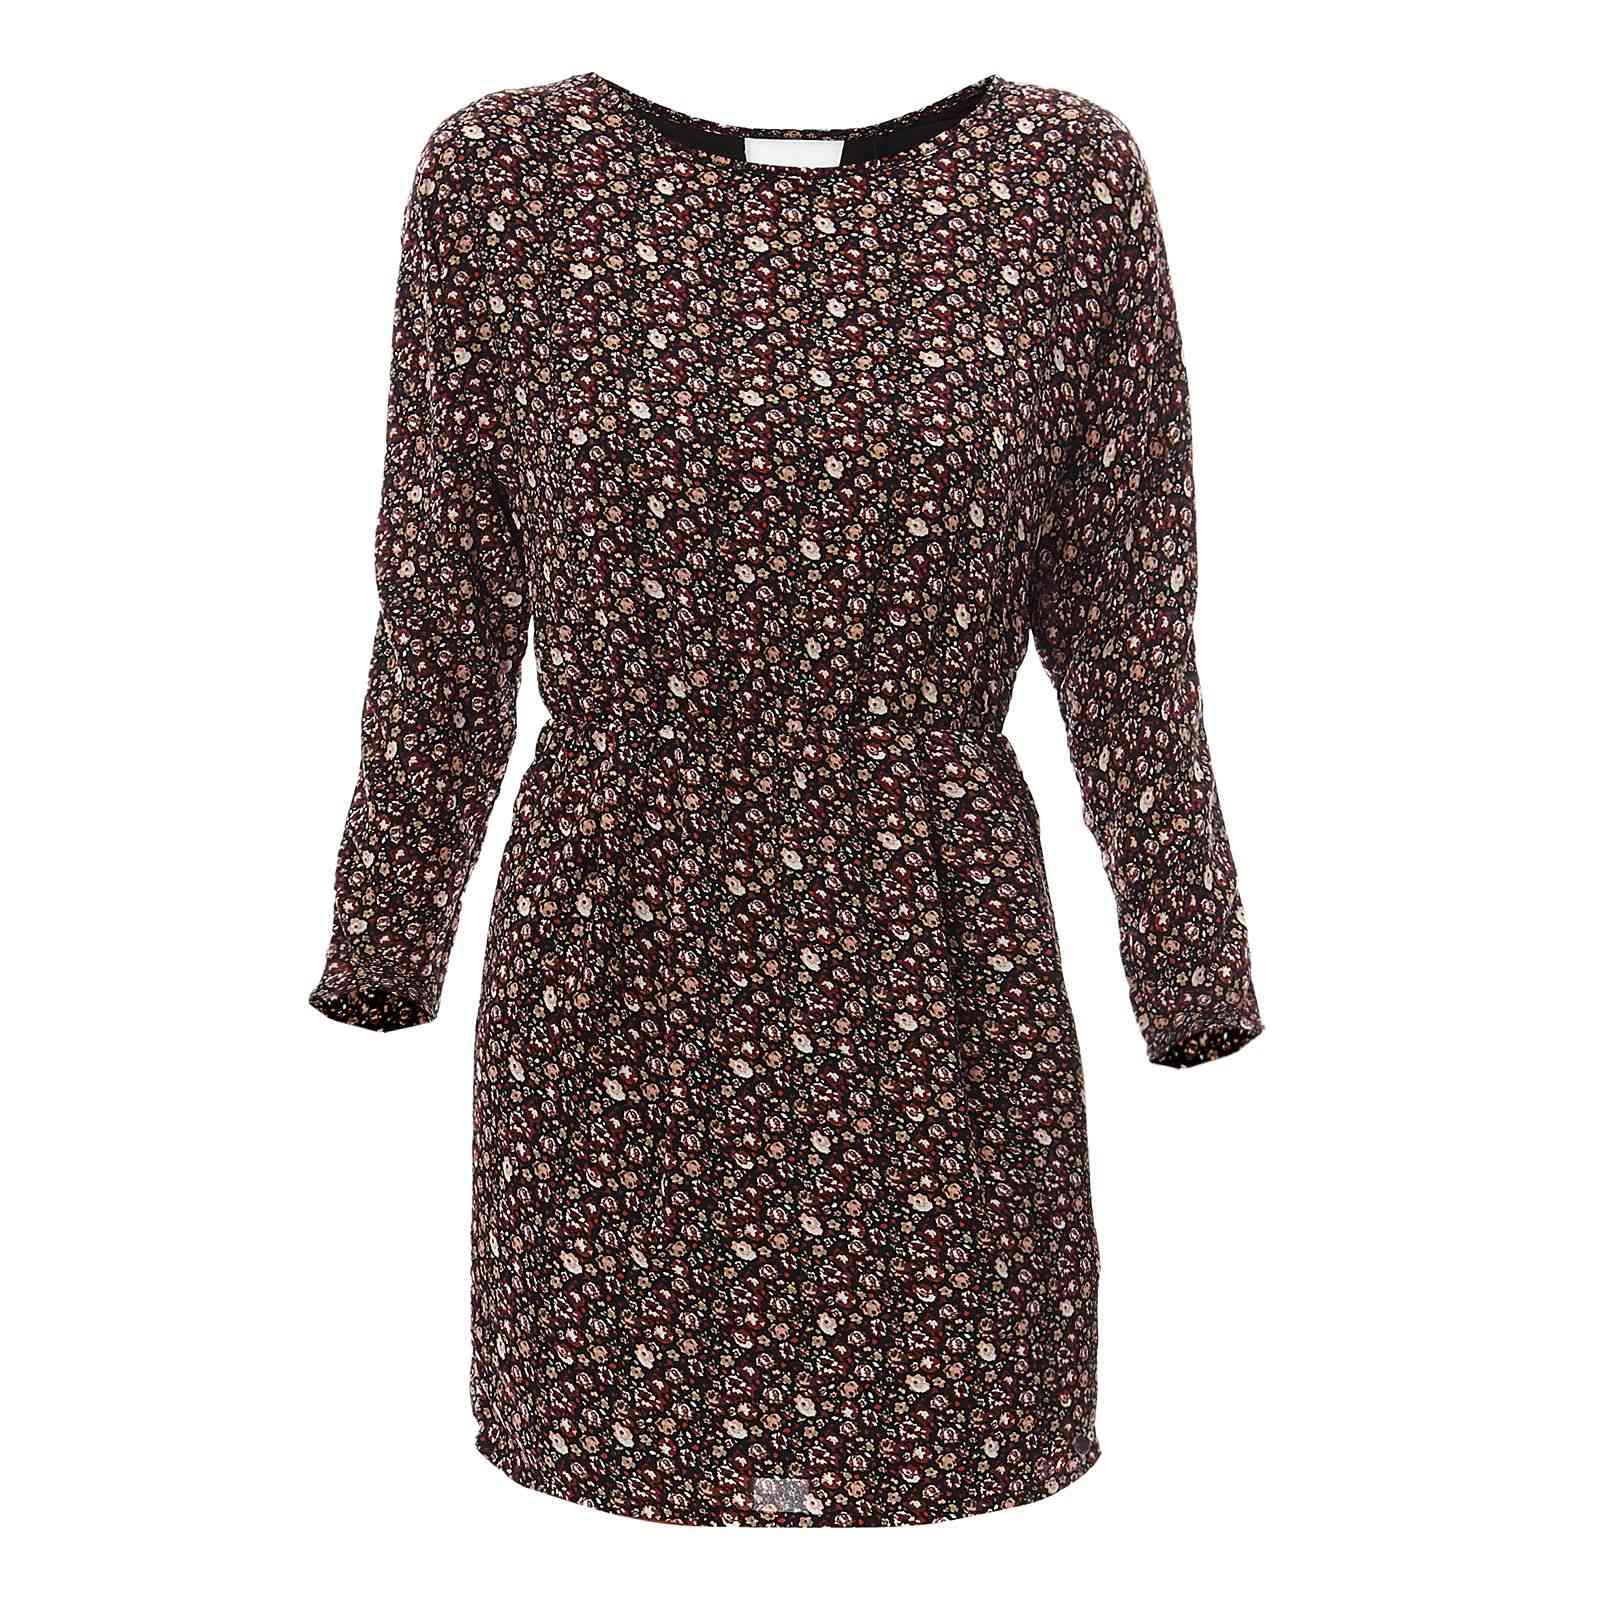 Pepe Jeans London Noes - Robe blousante - multicolore